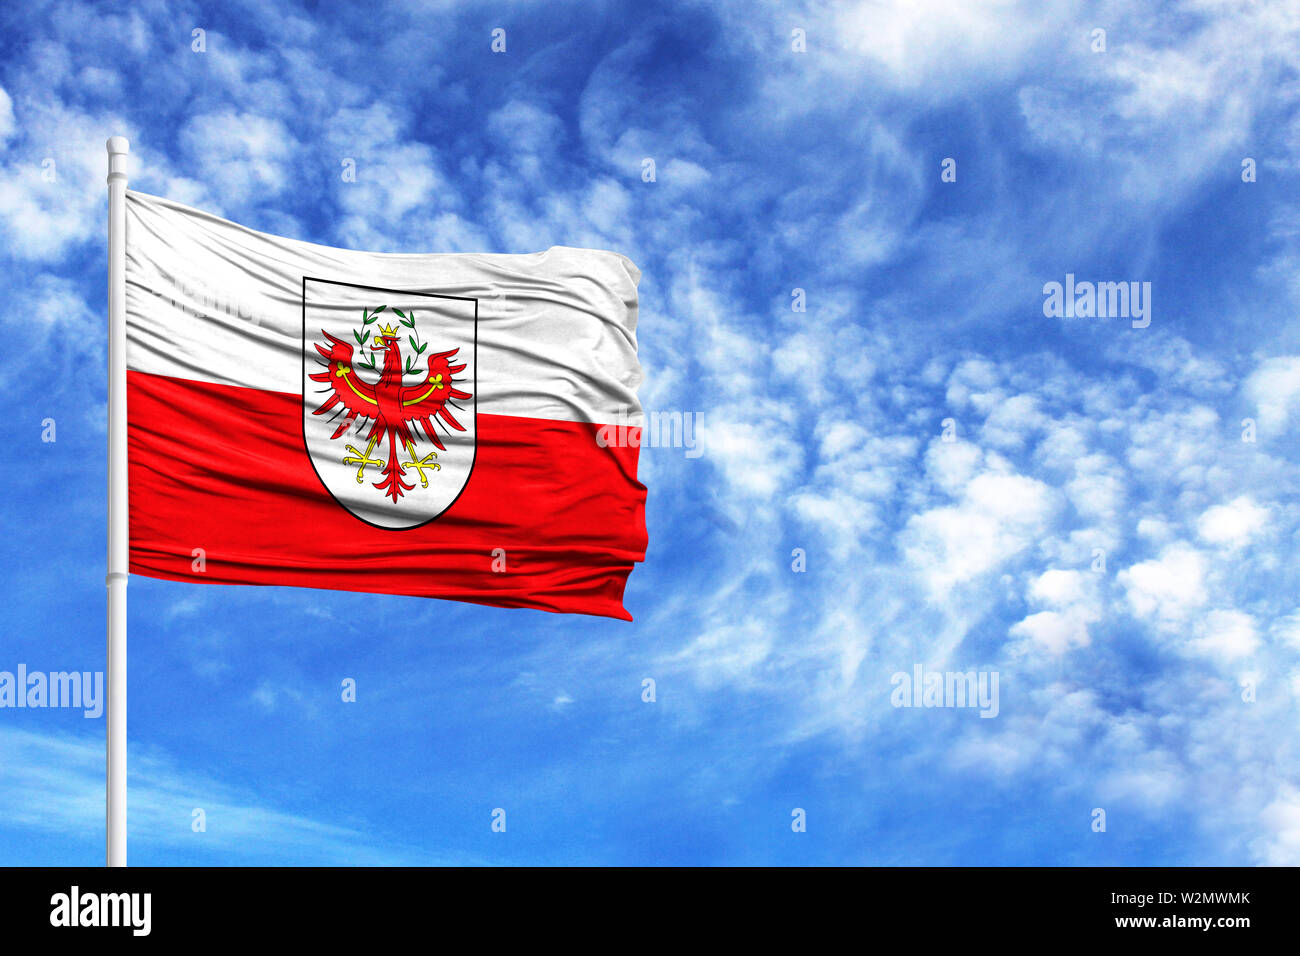 National flag of Tyrol on a flagpole in front of blue sky - Stock Image